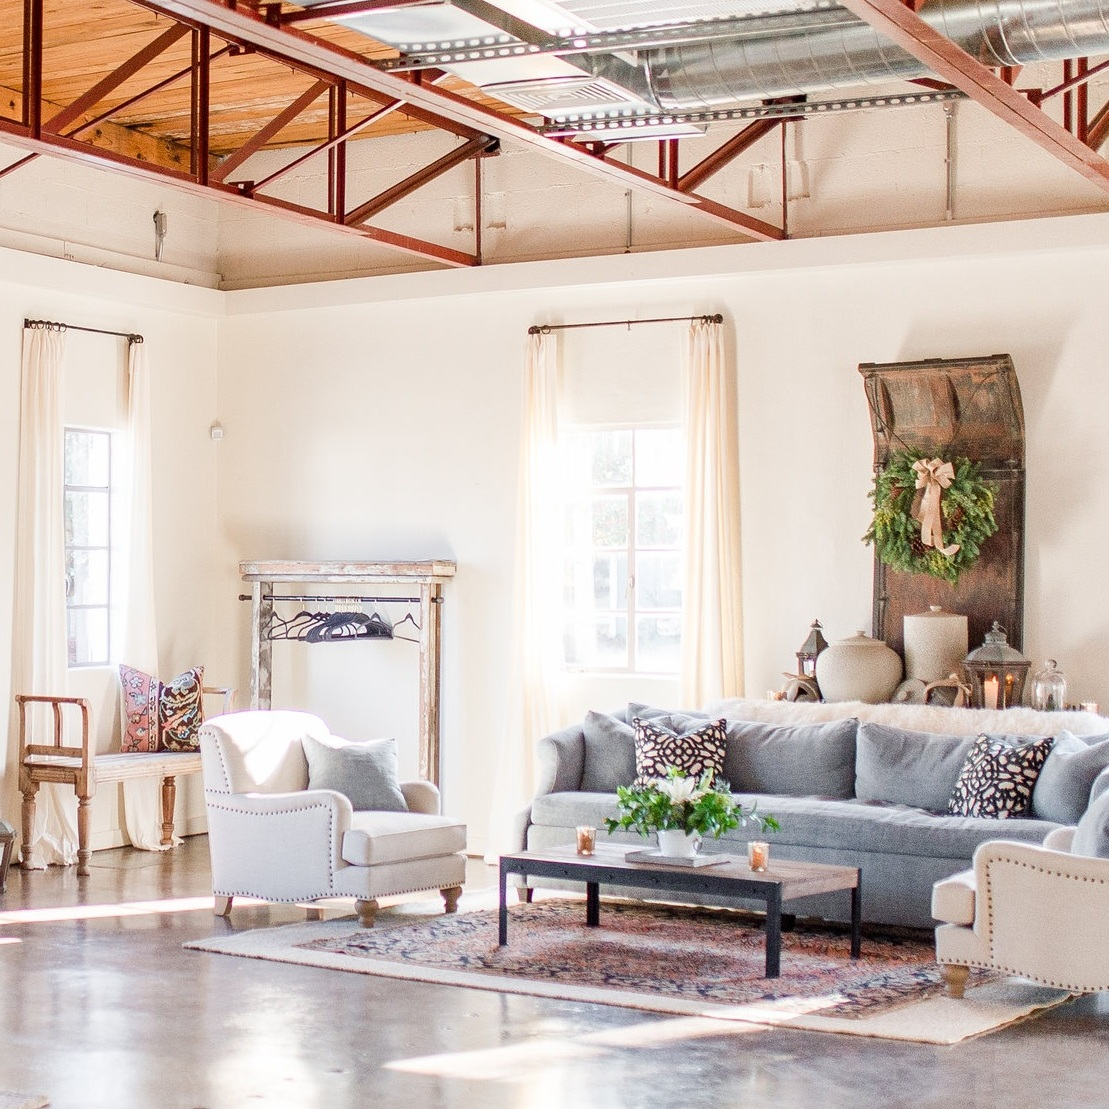 WAREHOUSE - Our historic 4,000 sq/ft warehouse in the heart of midtown Lynchburg will provide space for as many as 150 guests. Use our on-site event coordinator and preferred vendors to make your creative dream come to life in a space as unique as you are.